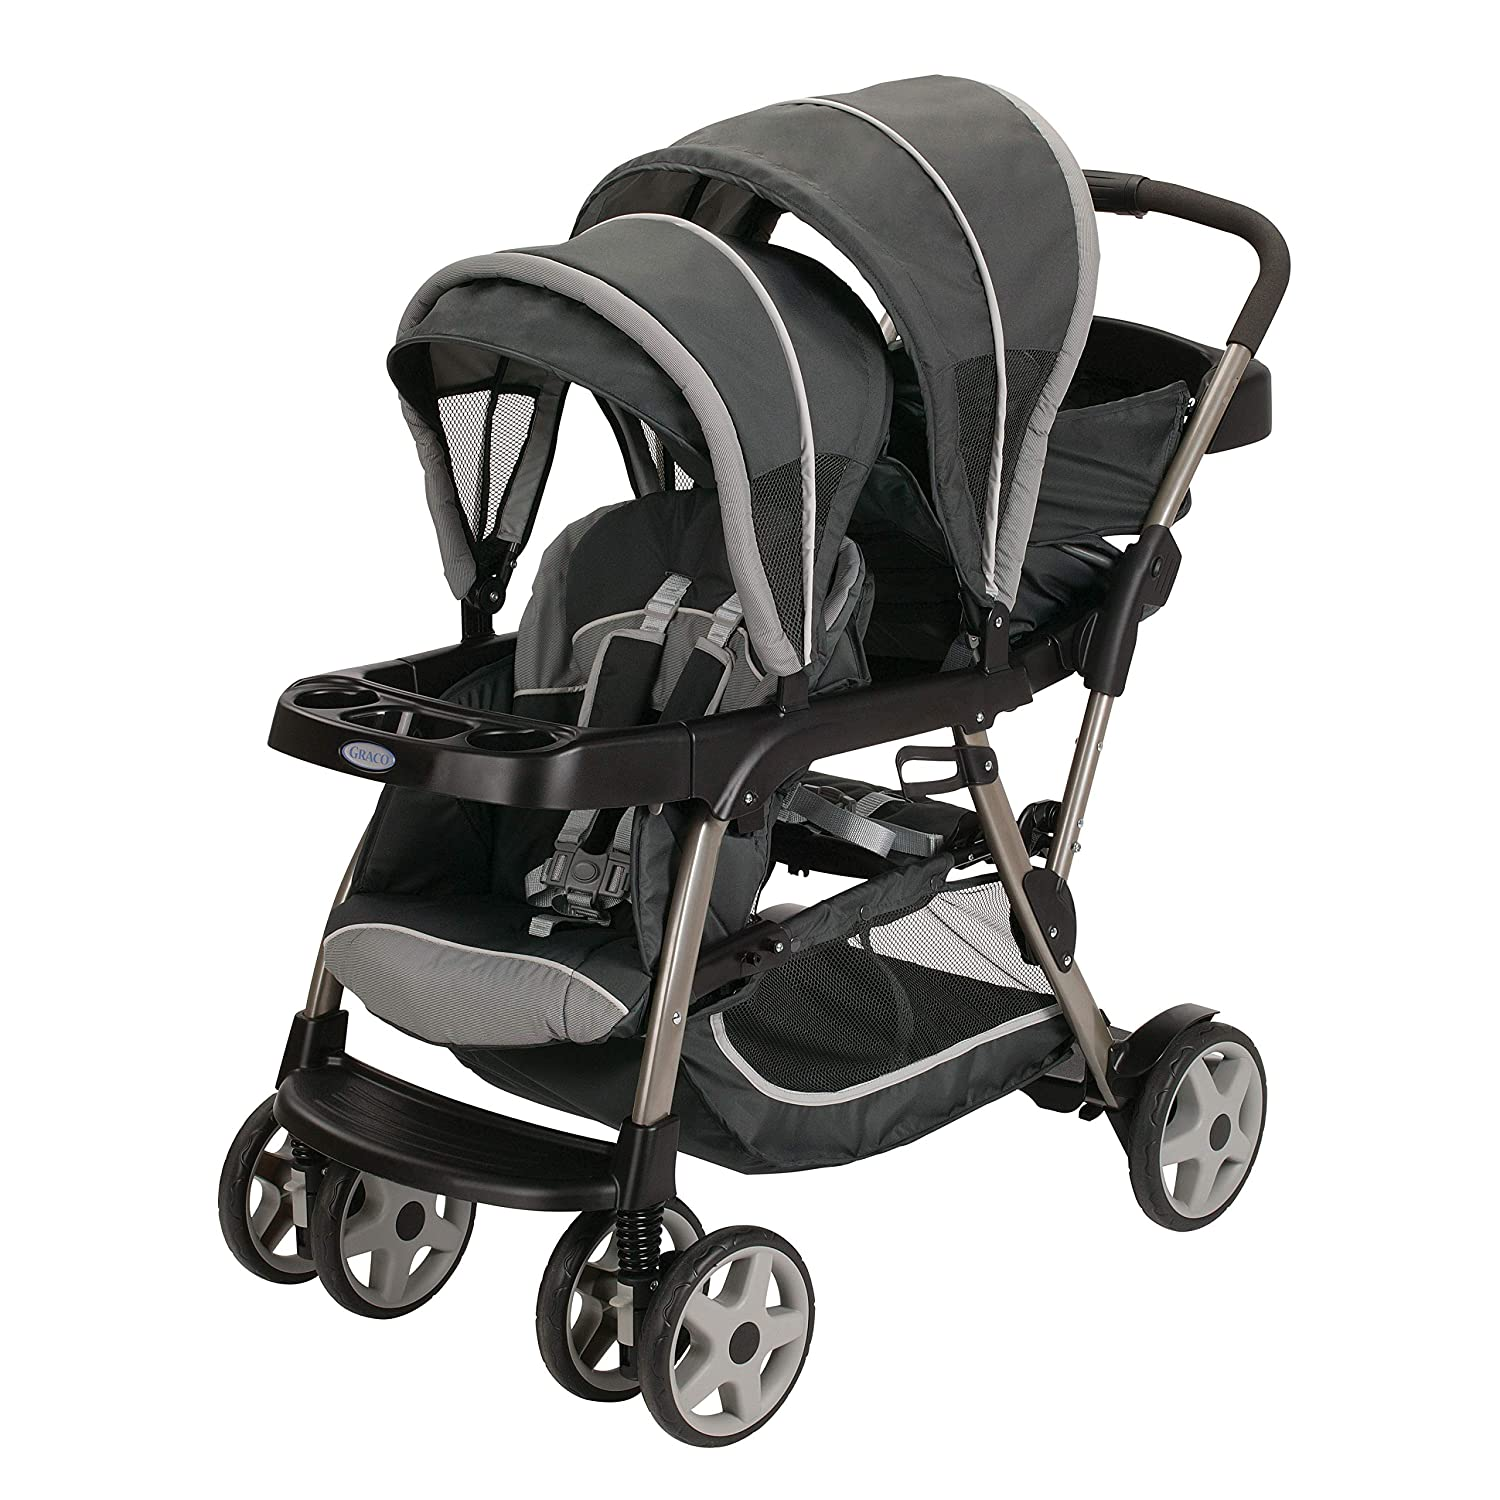 Top 7 Best Tandem Strollers Reviews in 2020 6